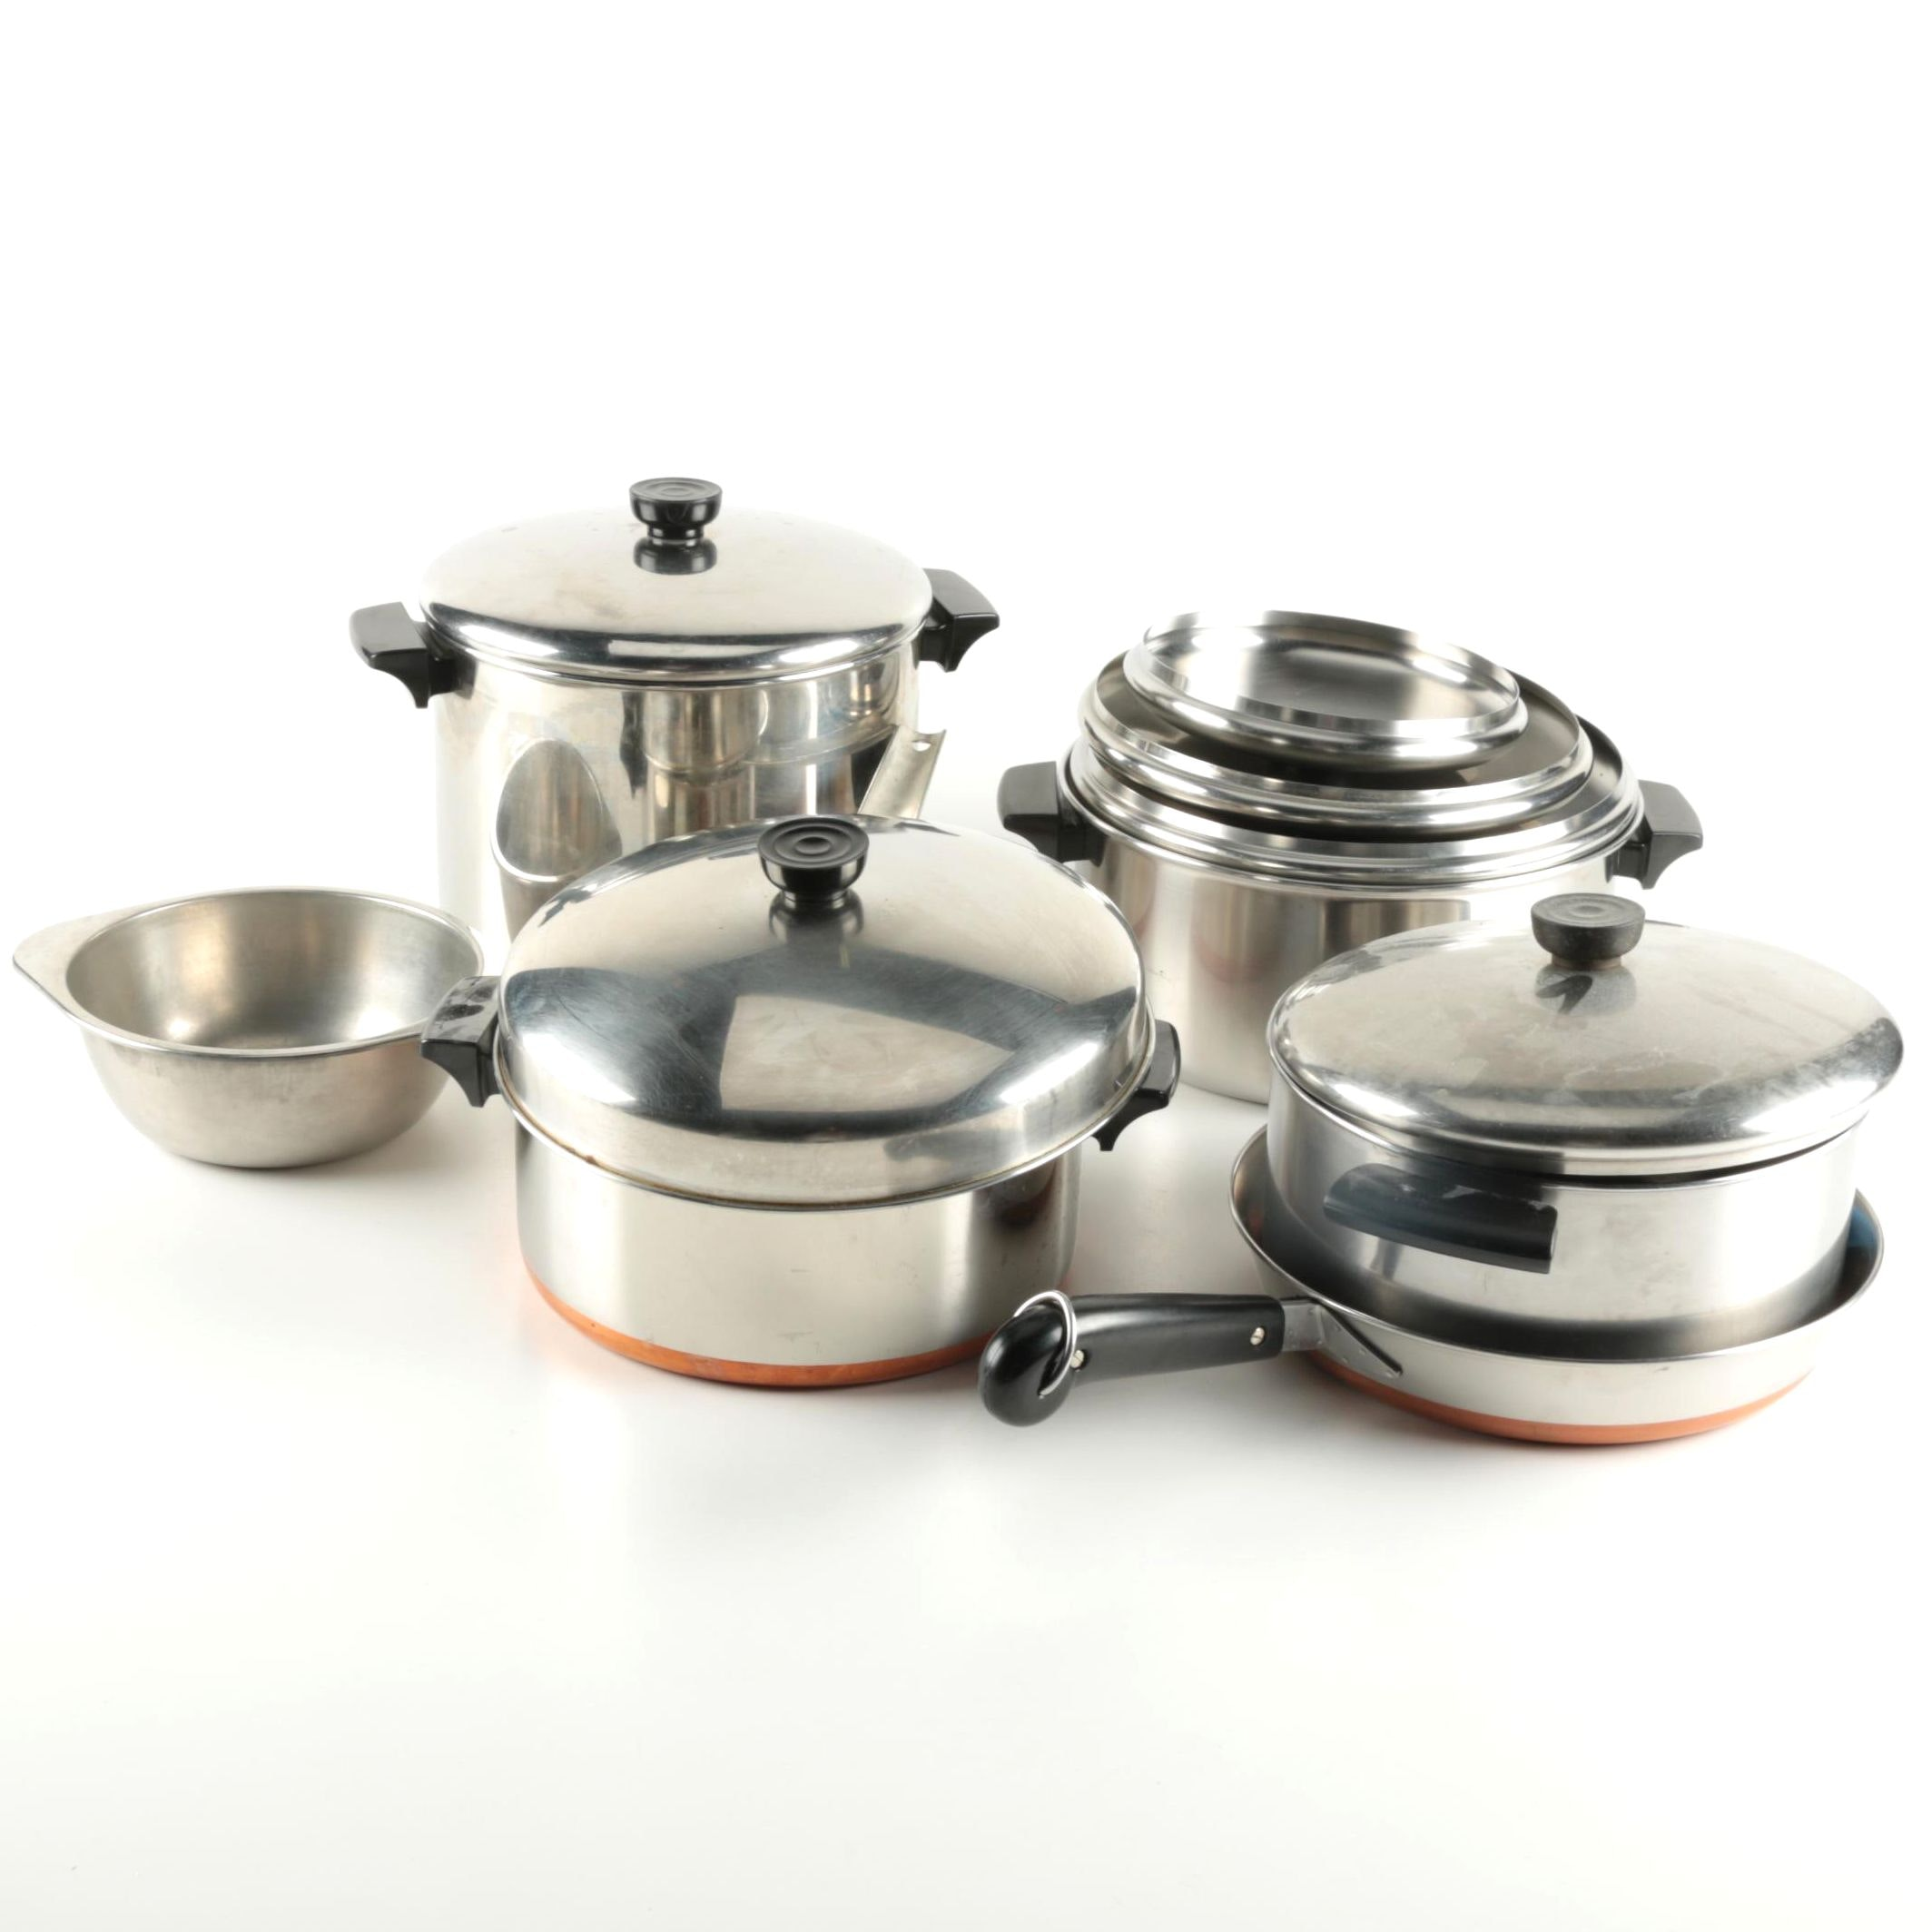 Assorted Pots and Pans Including Revere